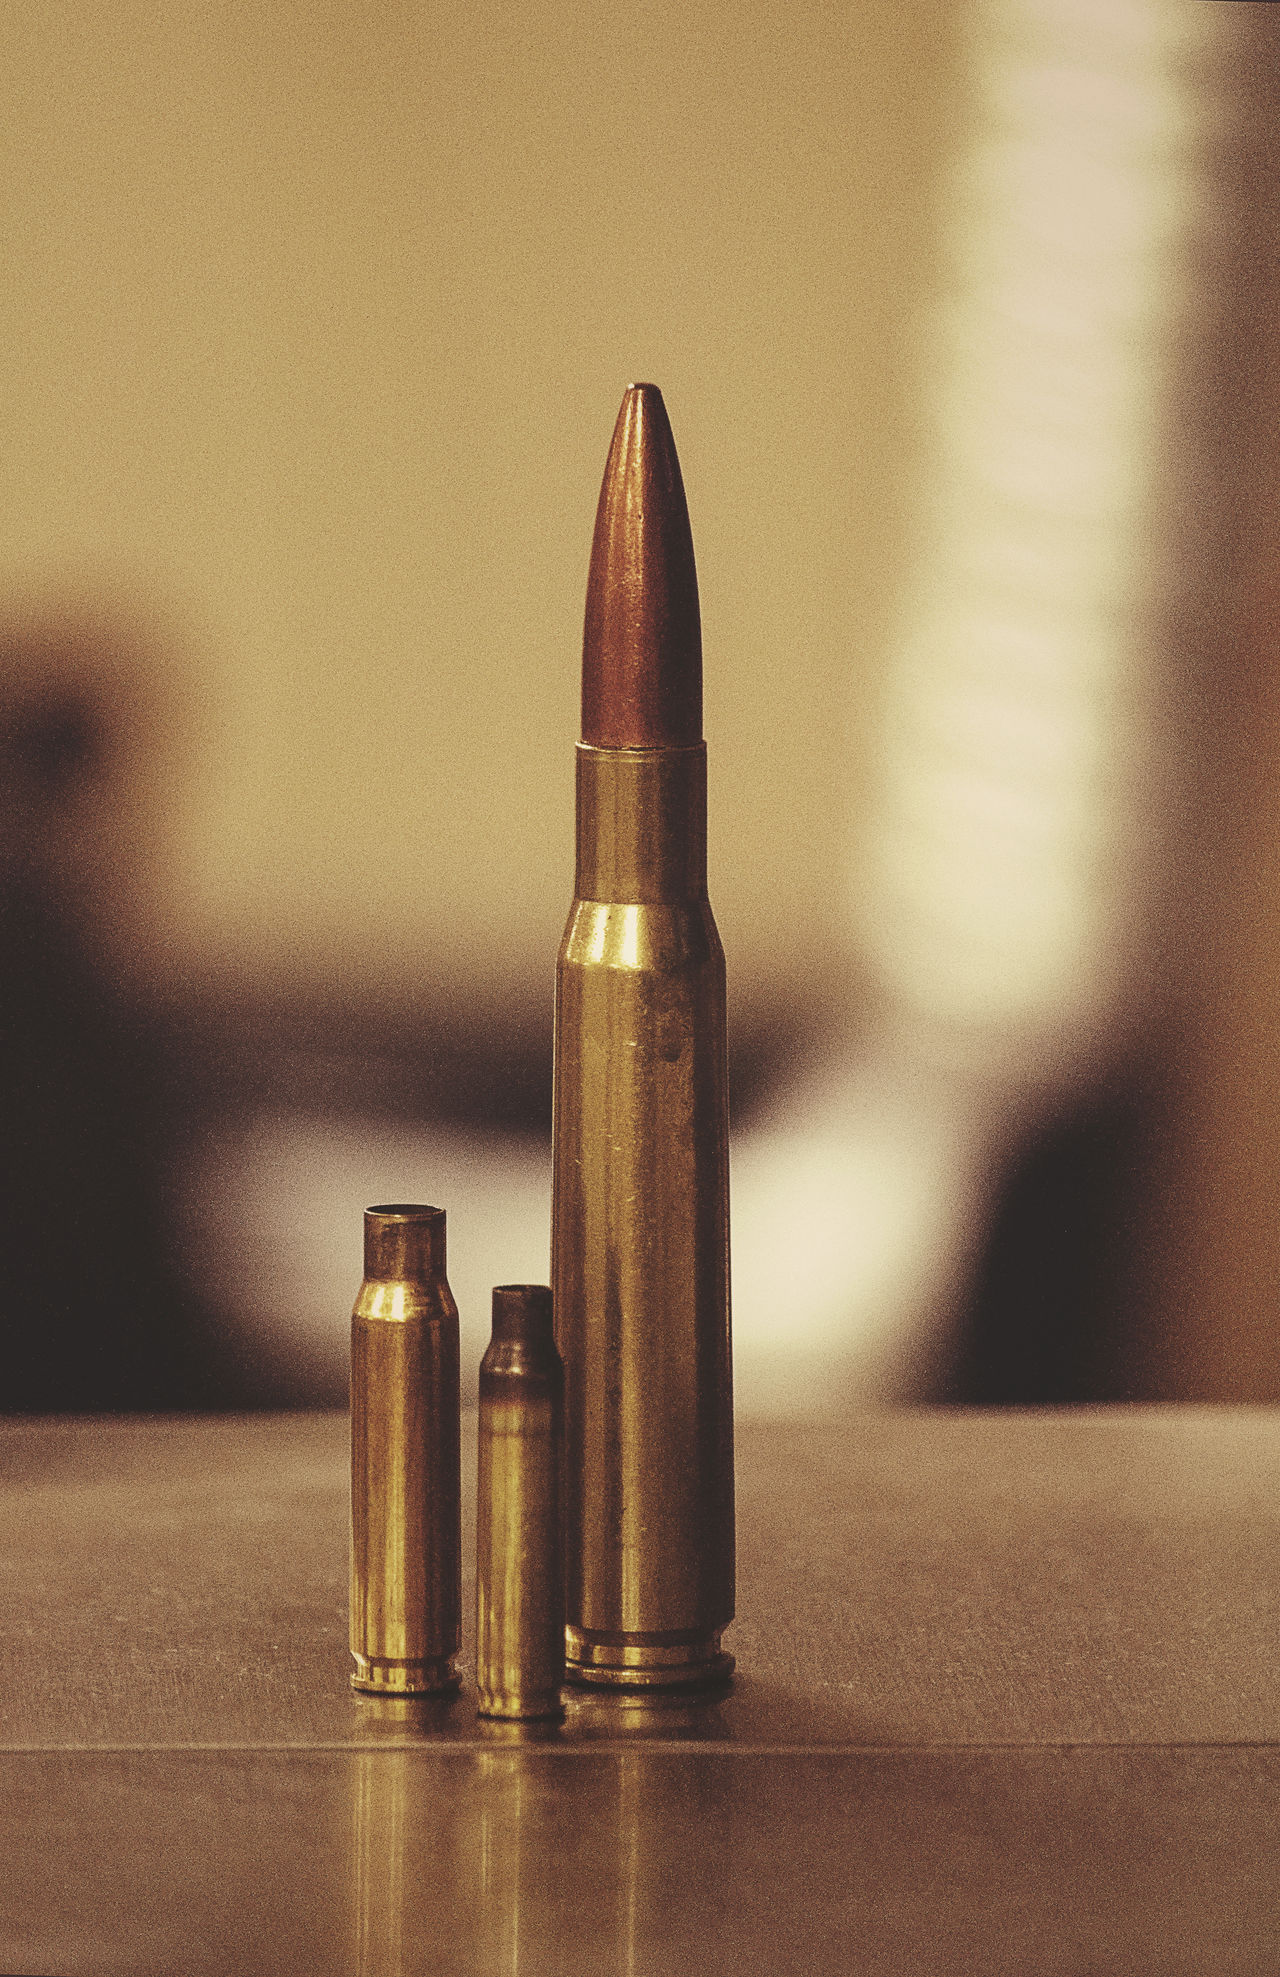 Bullets Ammo Bullet Cartridge Close-up Copper  Gun Hunting Lead Metal Military Pistol Projectile Rifle Round Shell Weapon